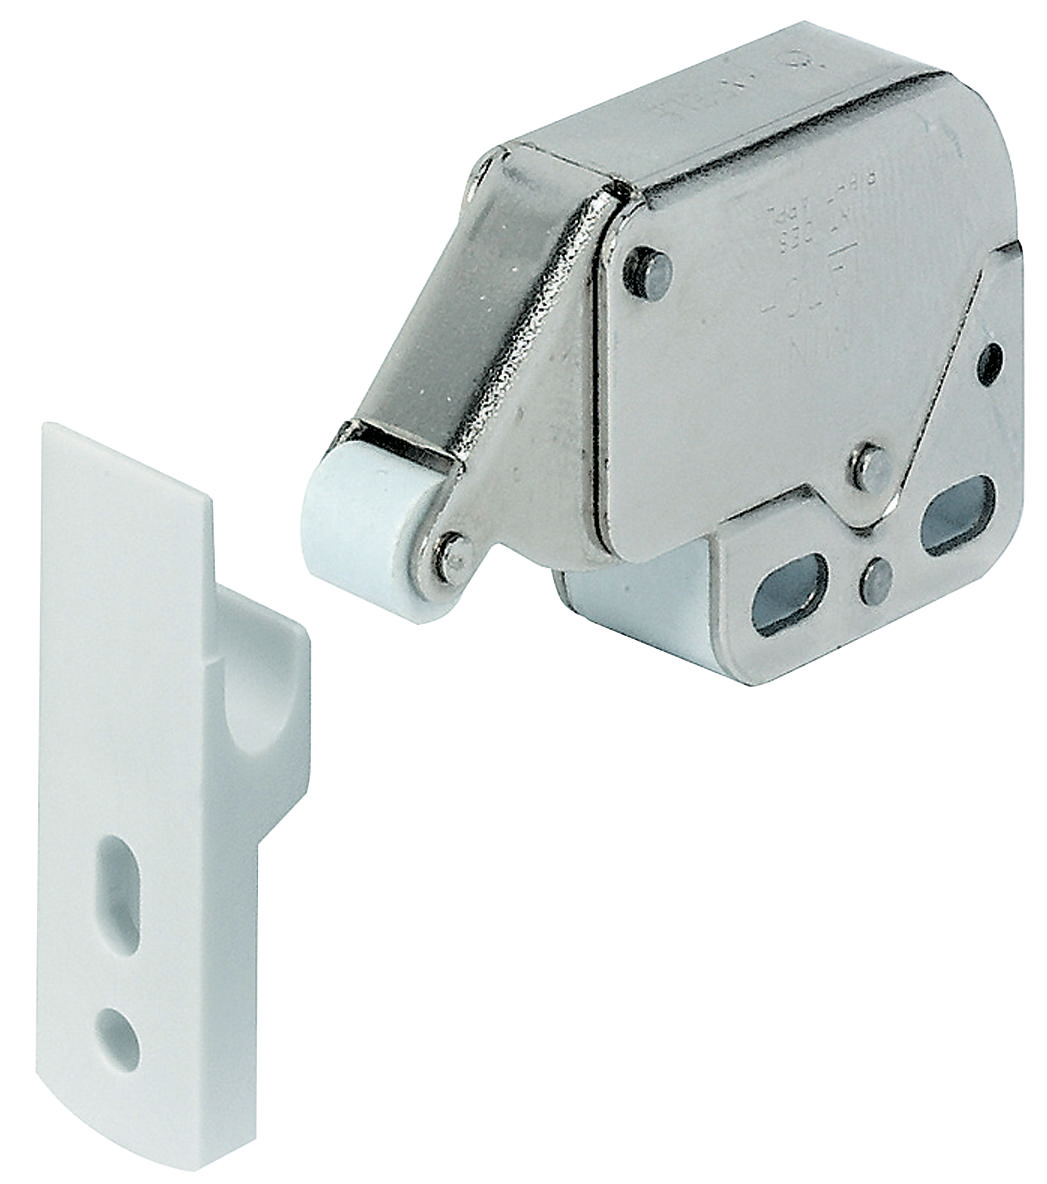 Hafele 245 54 701 Mini Latch Nickel Plated Plastic White Thebuilderssupply Com